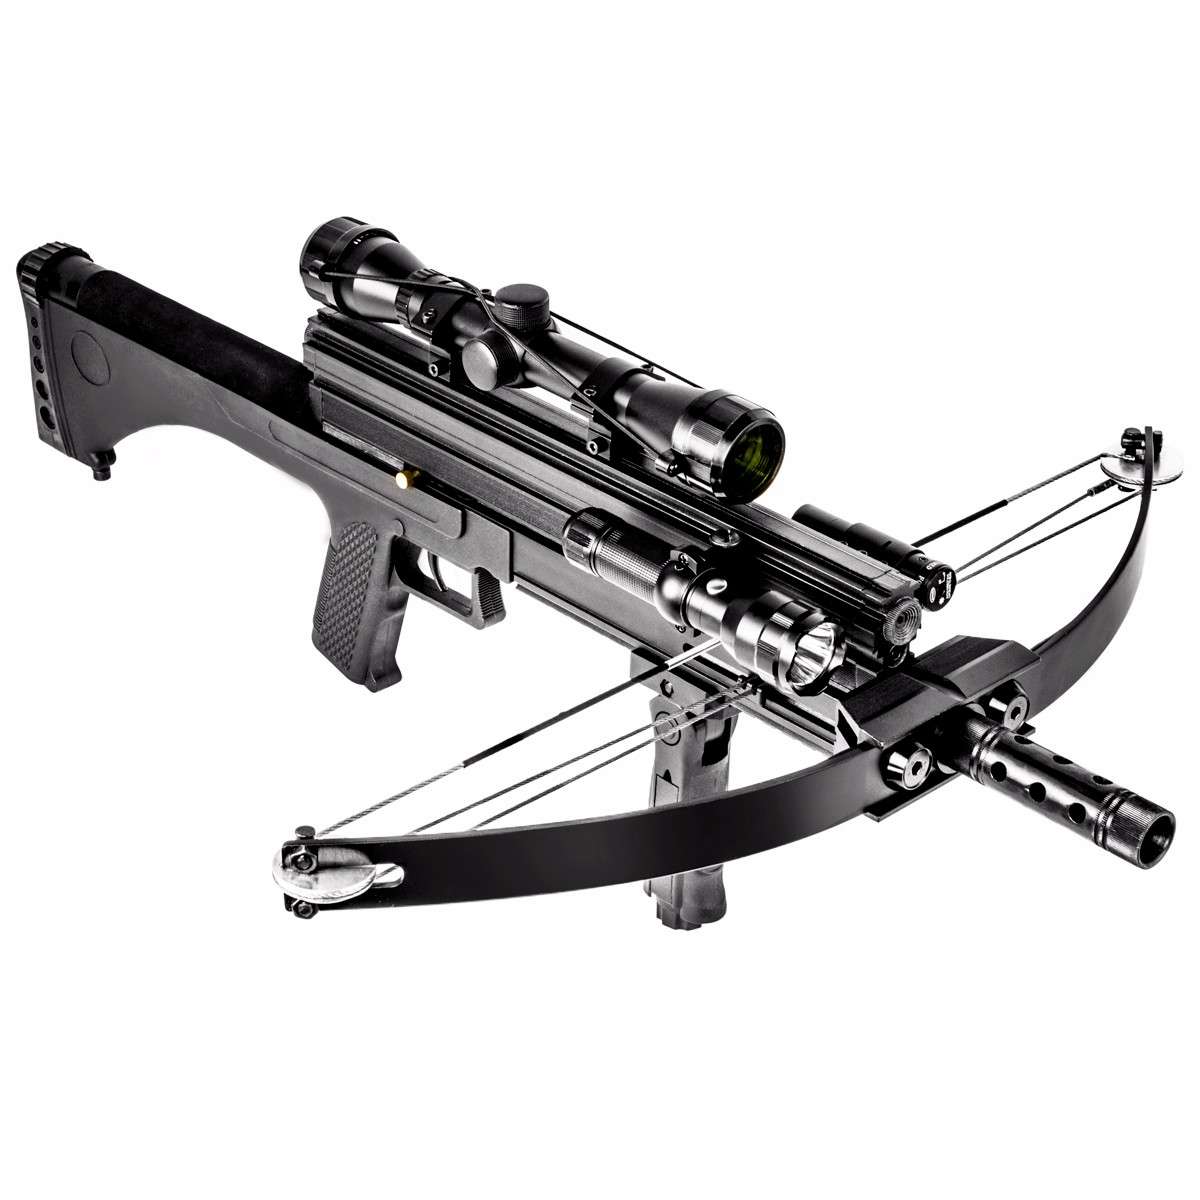 XtremepowerUS Multifunctional Crossbow 80 lbs 160 fps Hunting Equipment 200 Magazine Capacity, Black by